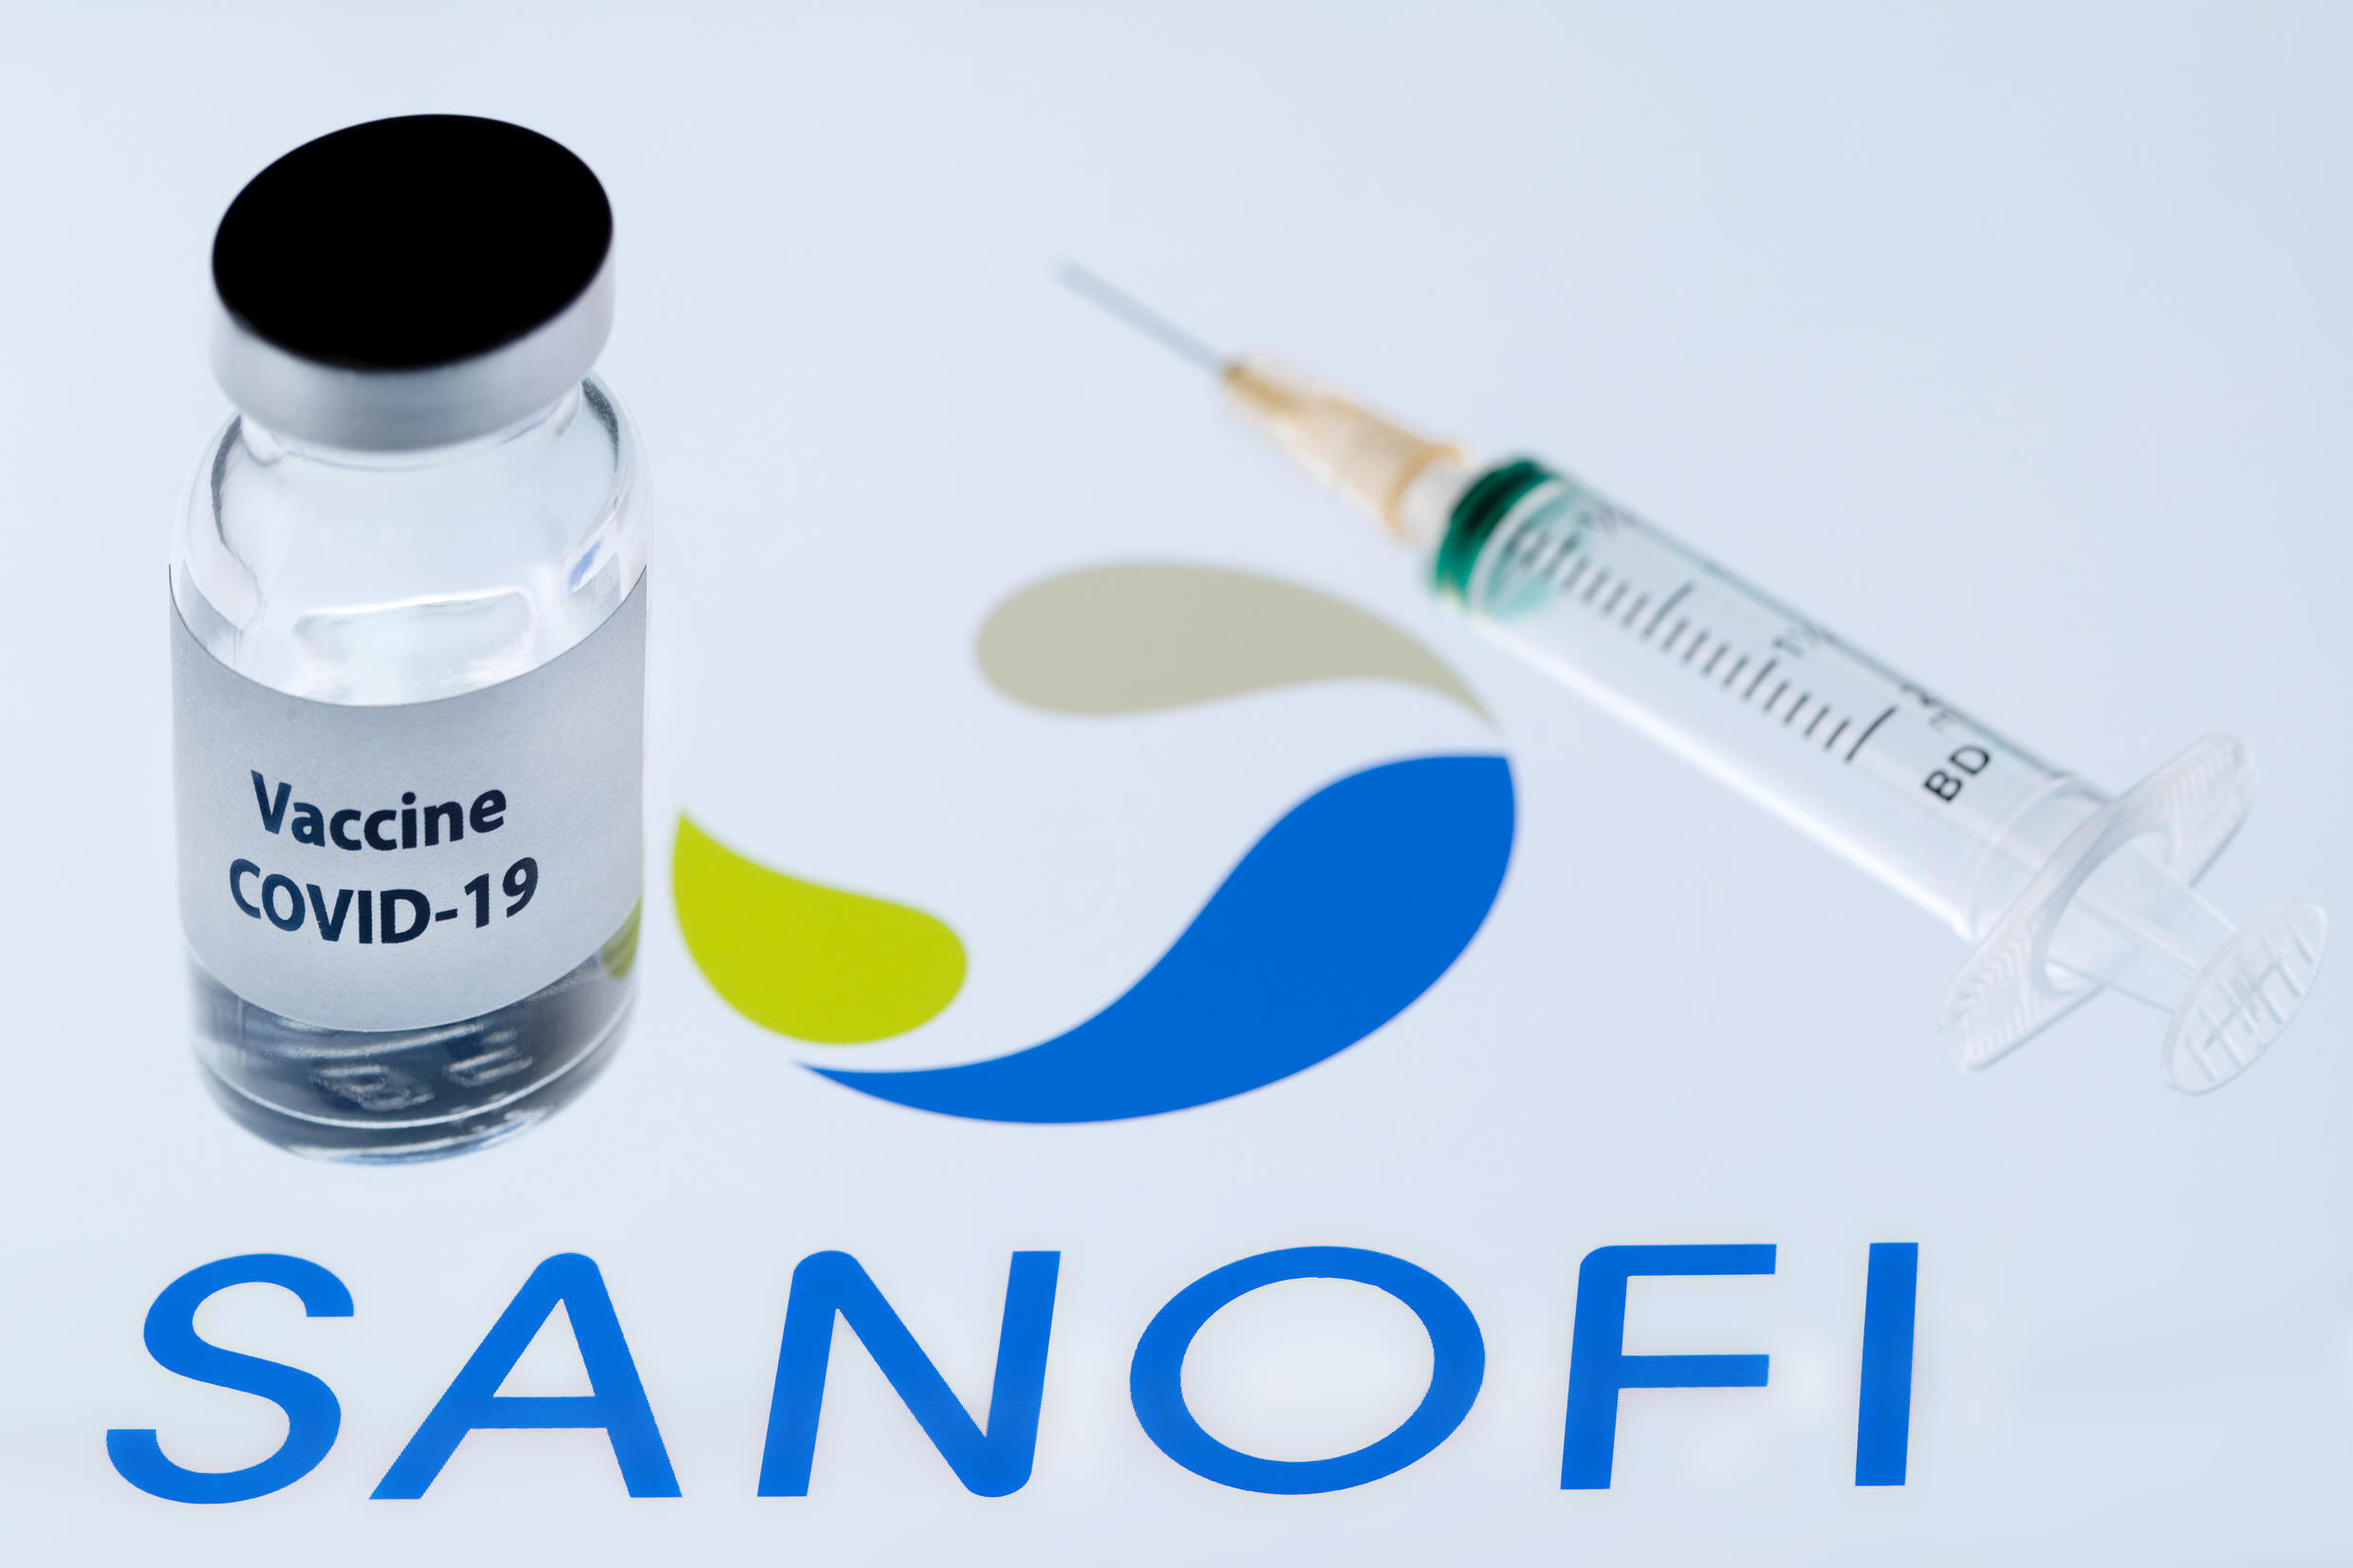 The vaccine candidate is based on technology that Sanofi has used to produce seasonal influenza vaccines and on immunological agents developed by GSK